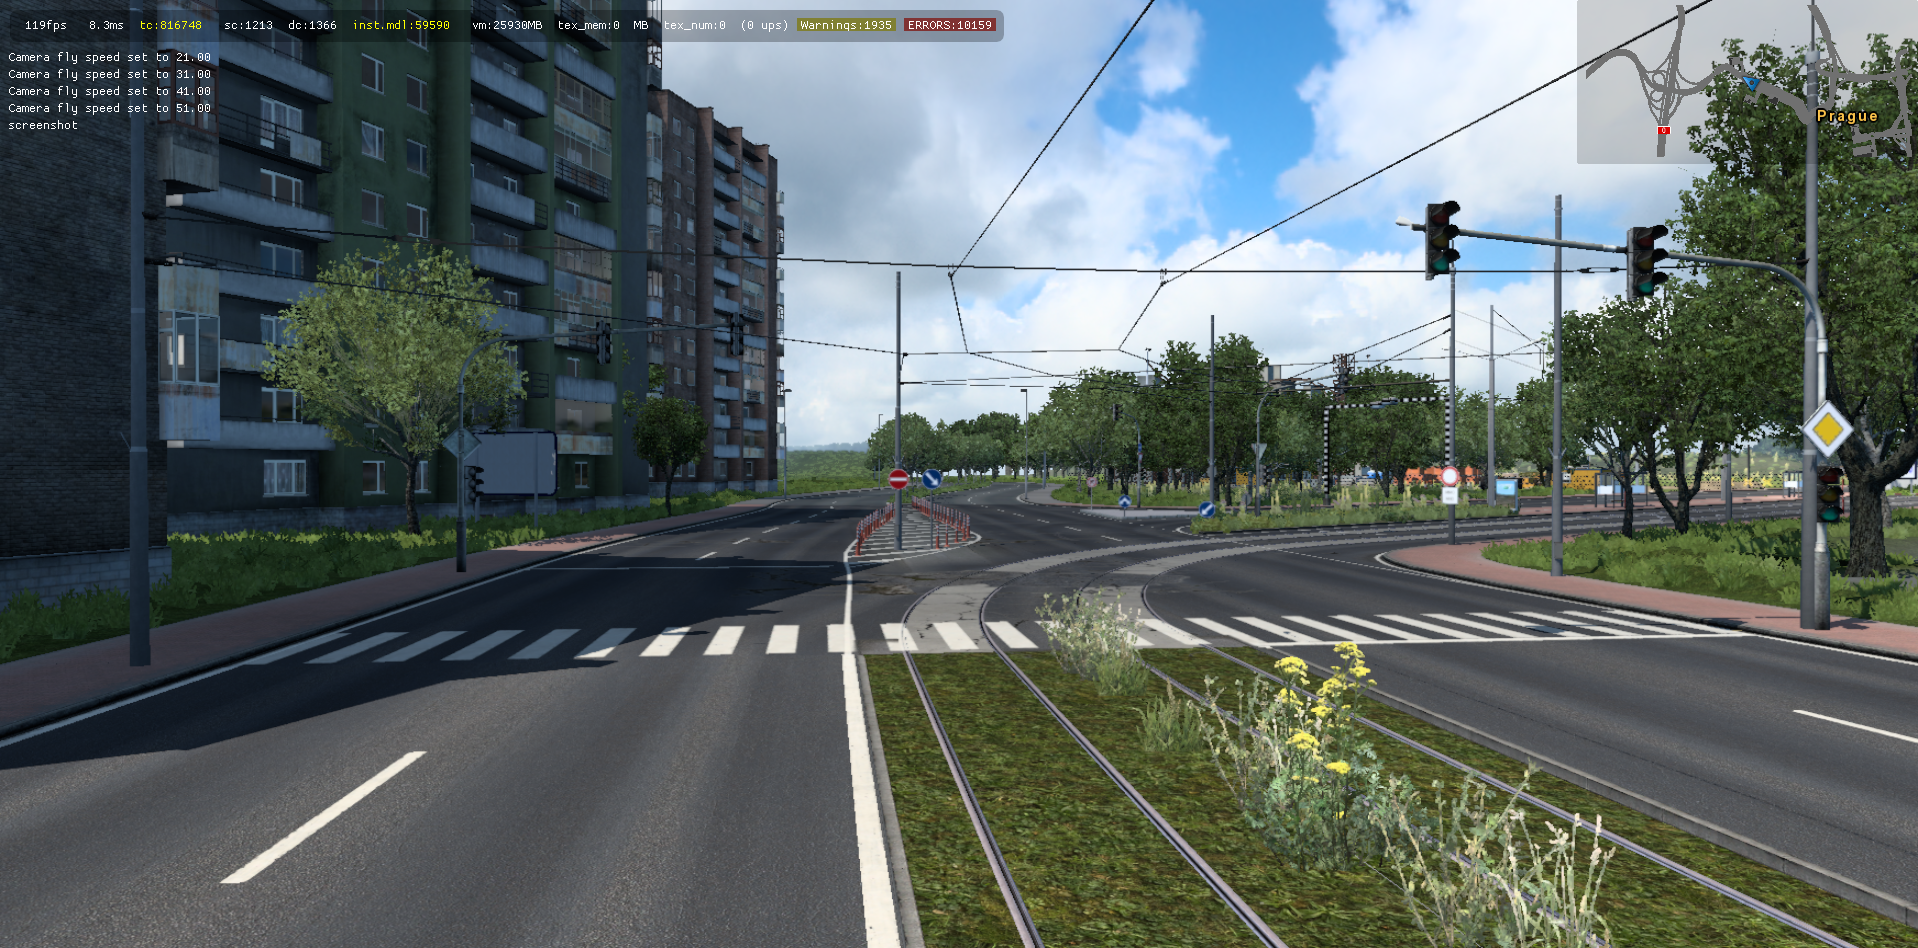 ets2_20210801_003836_00.png